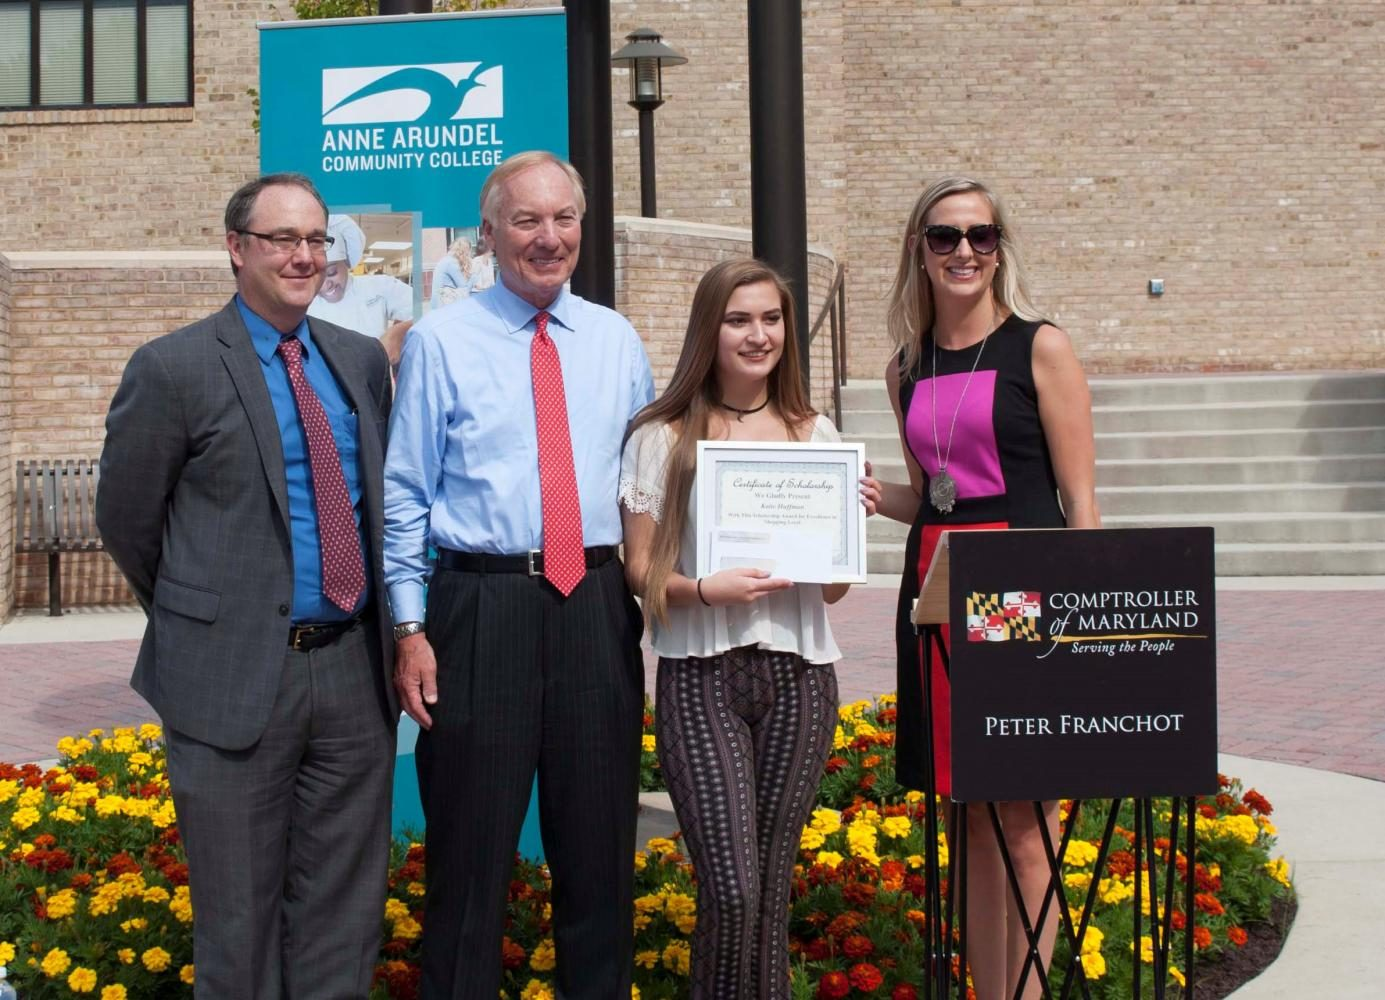 Dr. Mike Gavin, Vice President of Learning (left); Comptroller Peter Franchot; student winner Katie Huffman; and Cailey Locklair Tolle, president of the Maryland Retailers Association. Photo courtesy of Myles Gadsden, AACC Public Relations and Marketing Department.